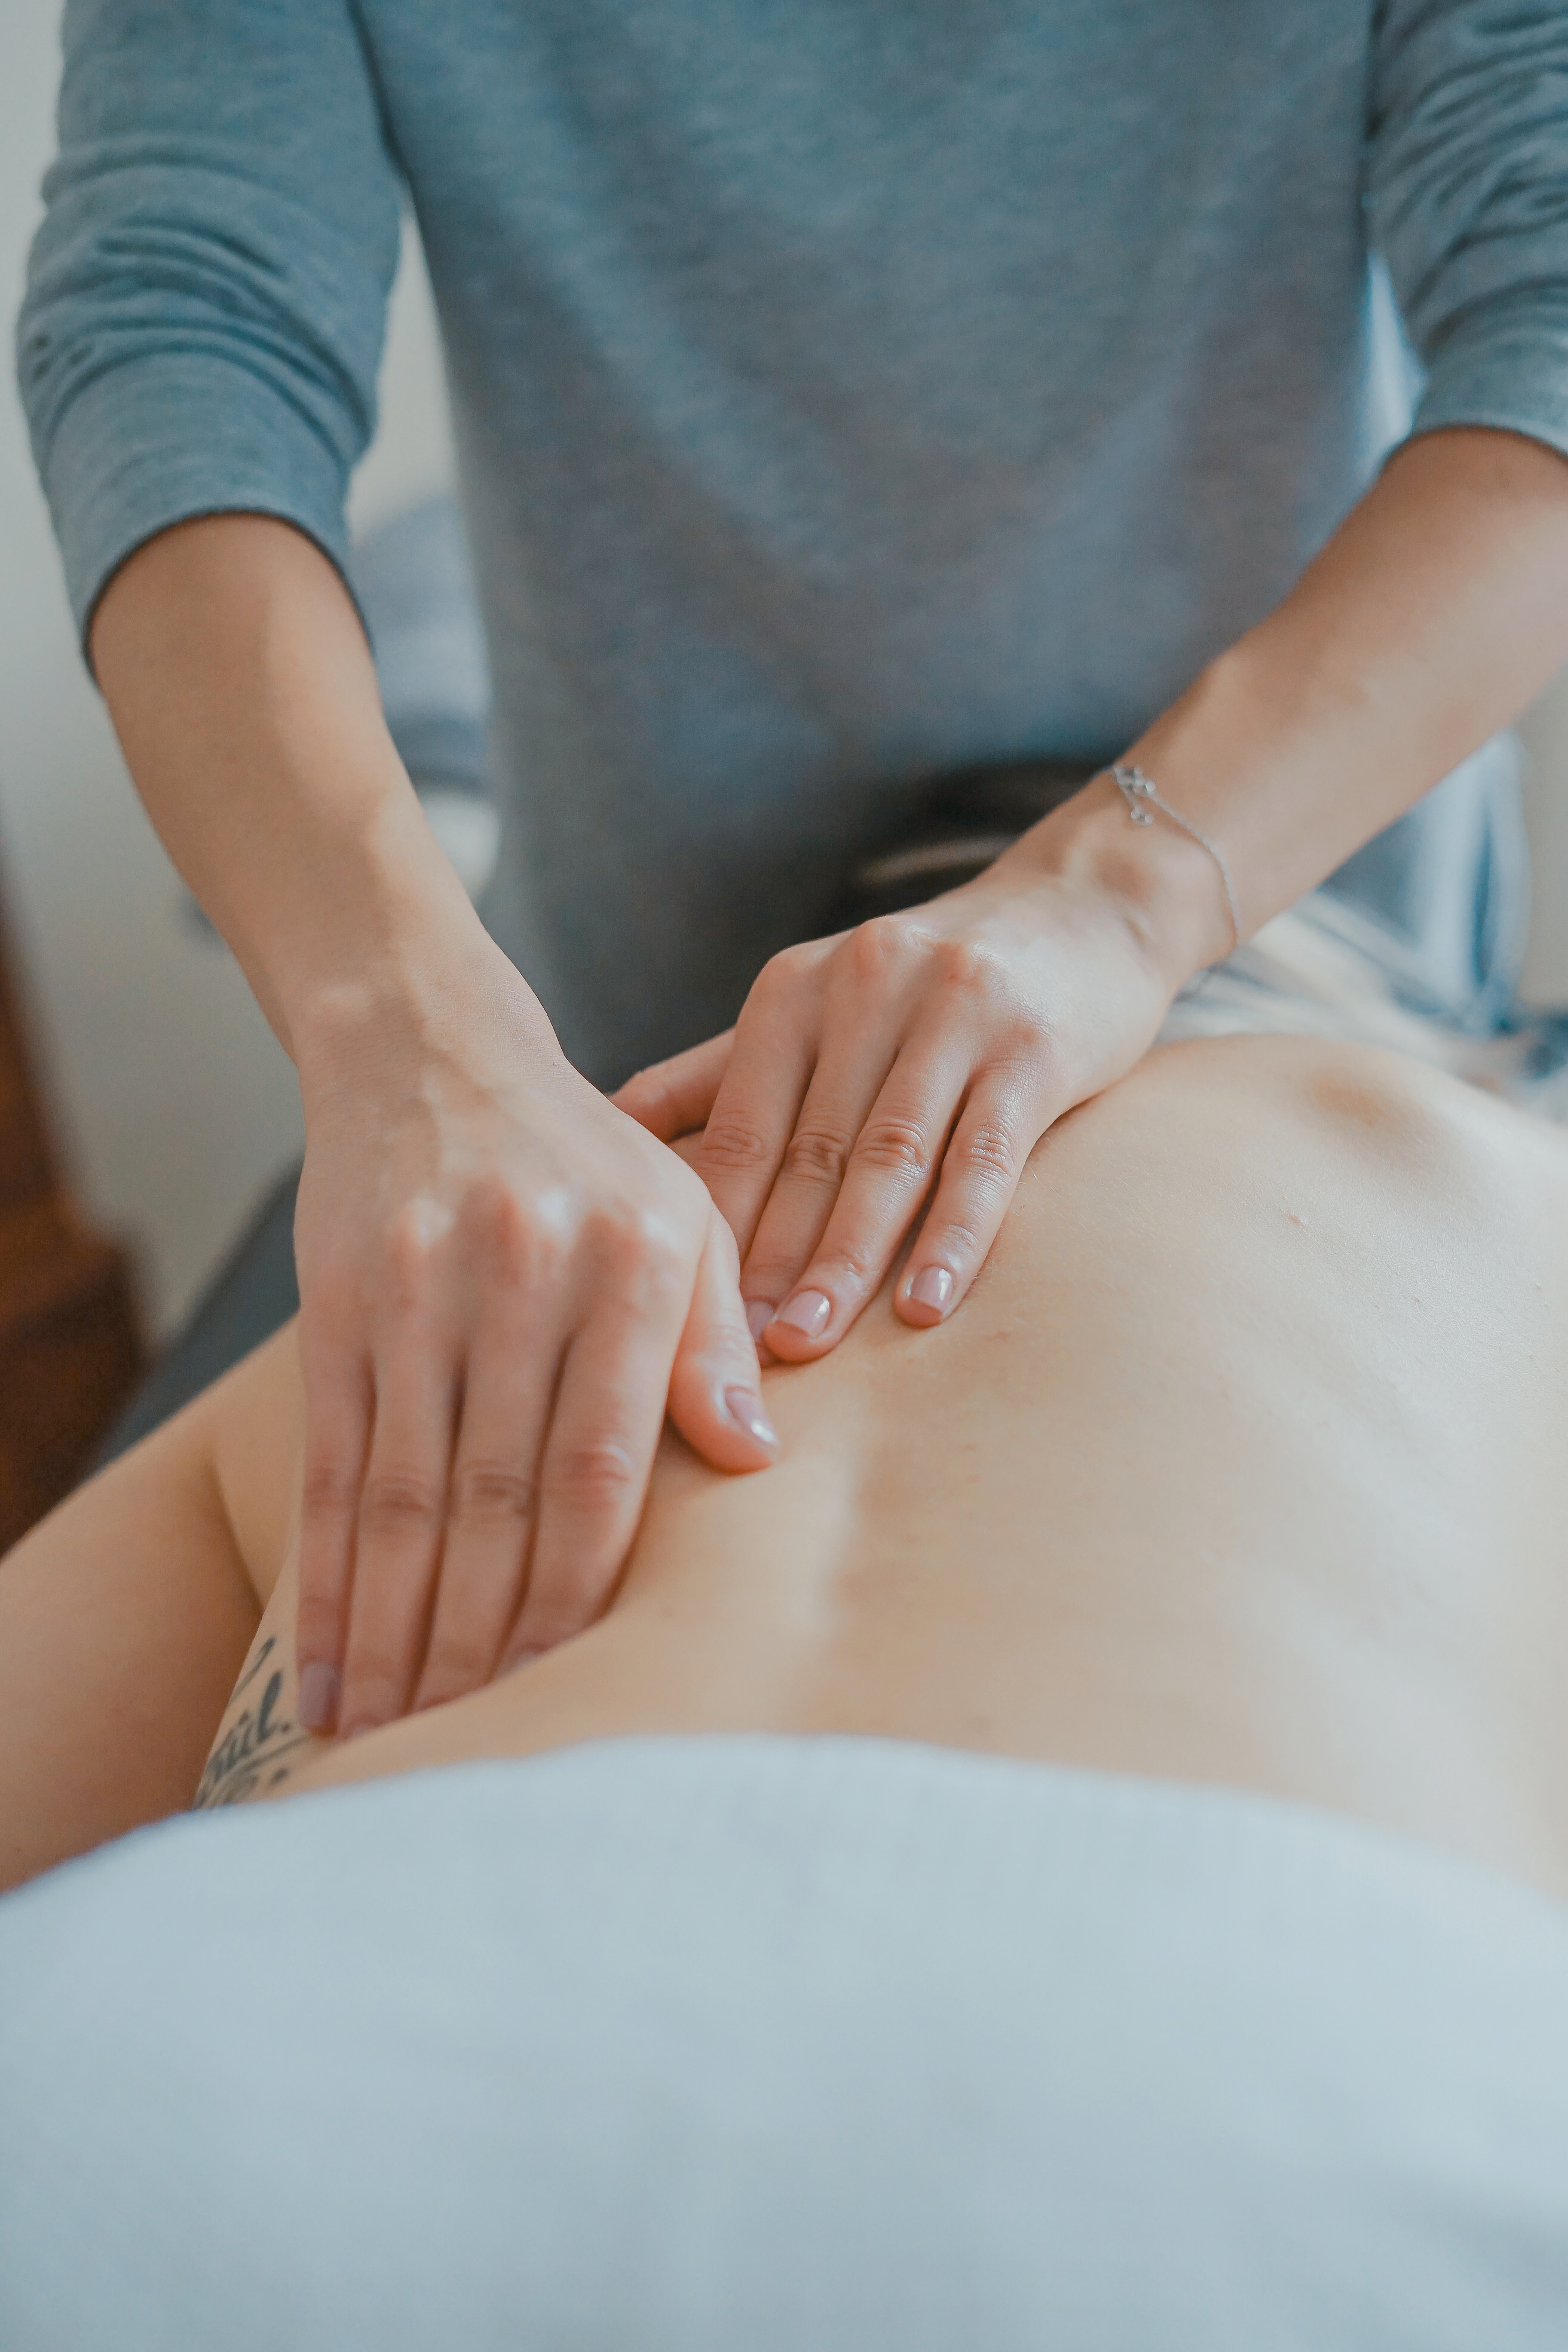 How to Choose a Massage Therapist Training Program